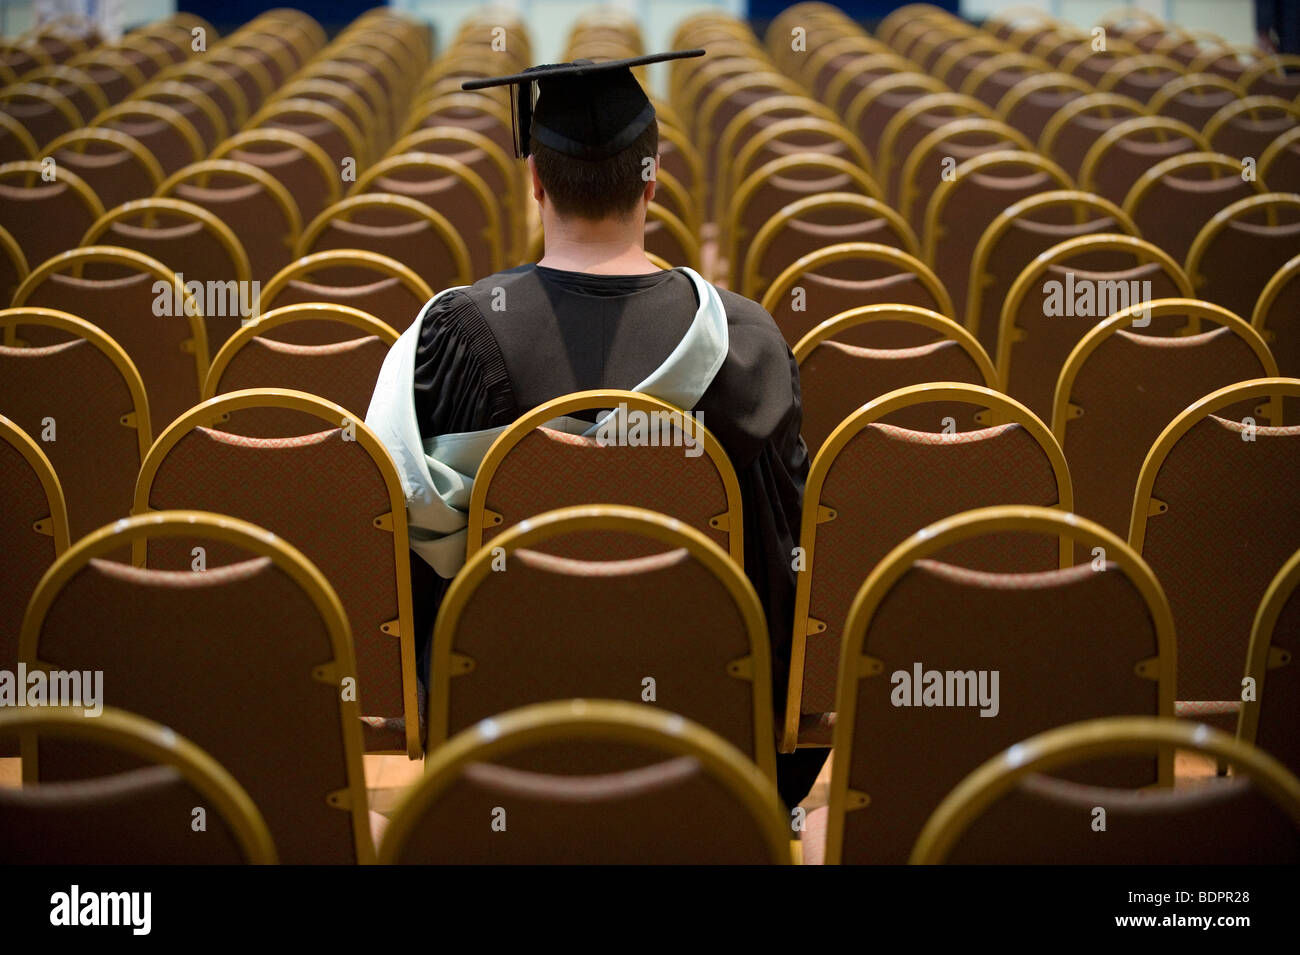 A university graduate waits for his ceremony to begin. - Stock Image